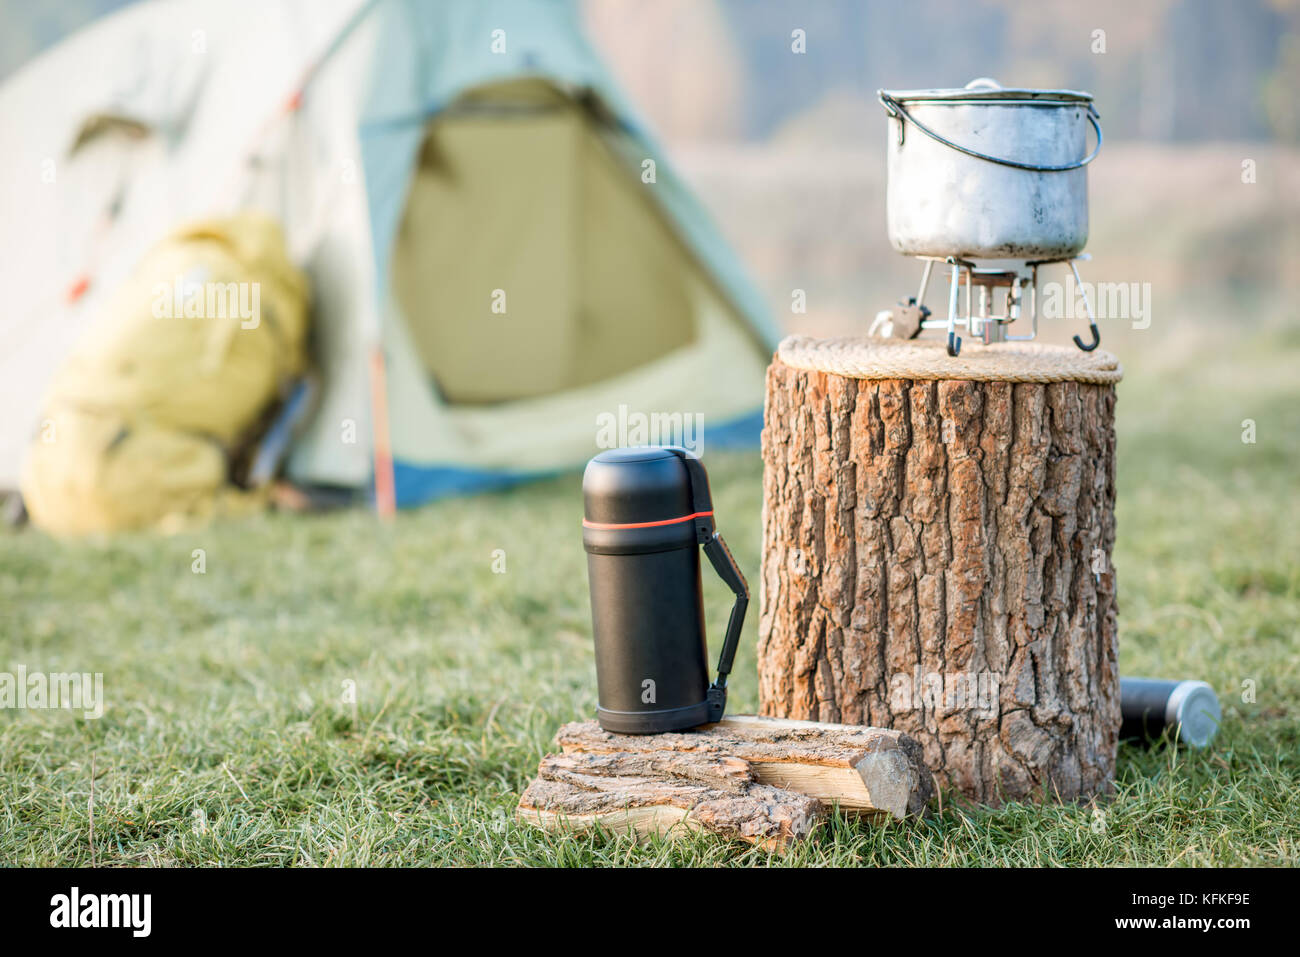 Camping place on the green lawn - Stock Image